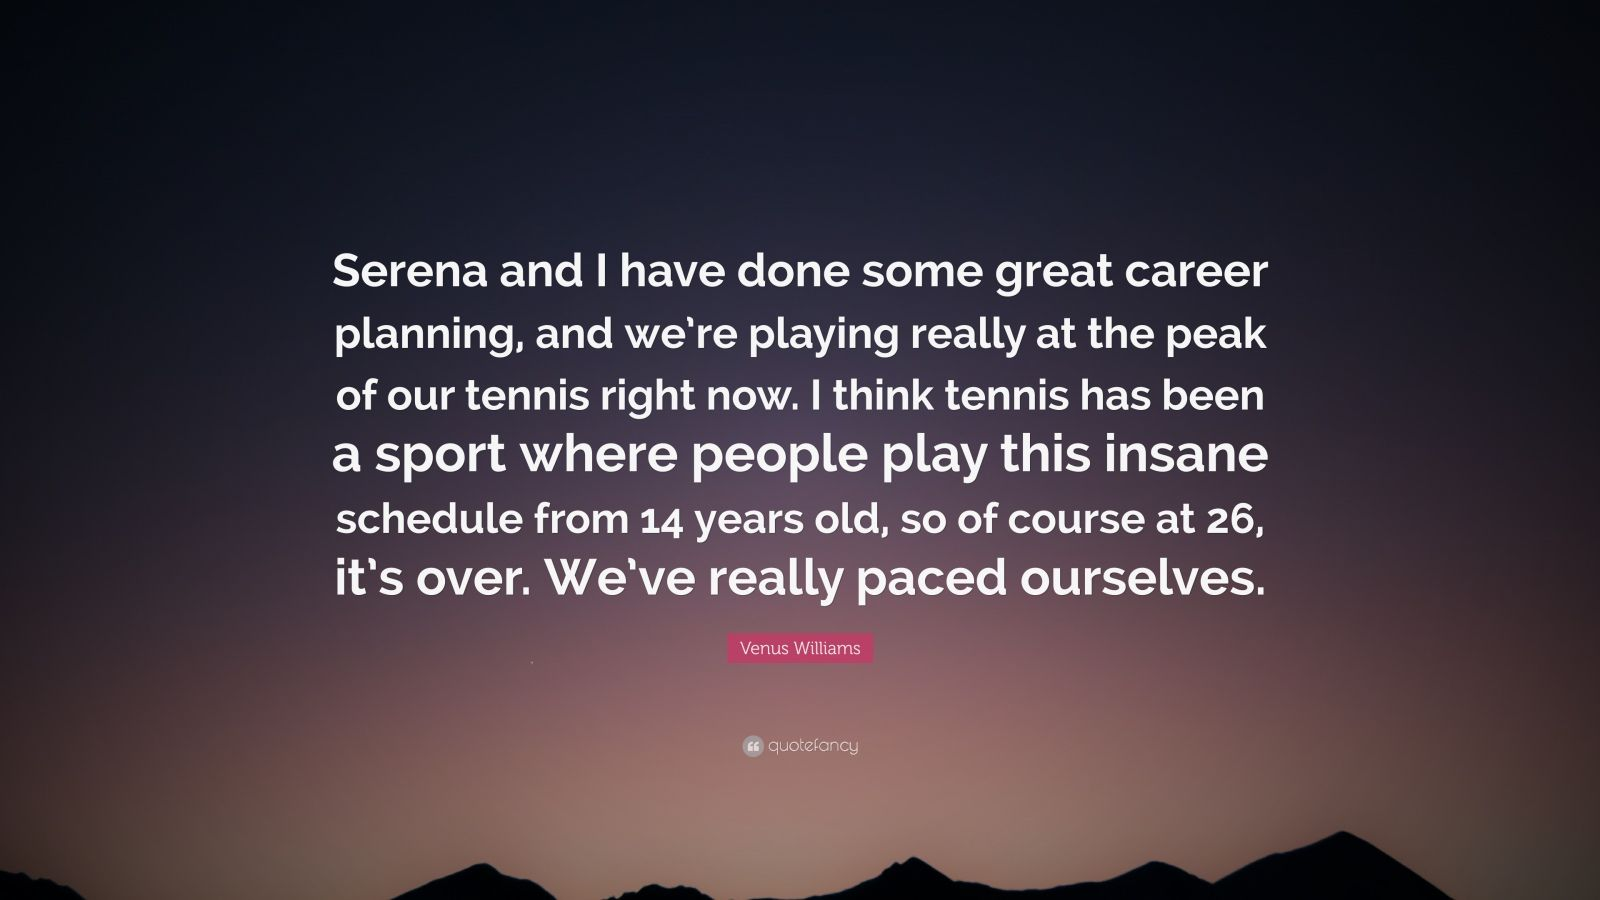 Venus Williams Quote Serena And I Have Done Some Great Career Planning And We Re Playing Really At The Peak Of Our Tennis Right Now I Think 10 Wallpapers Quotefancy